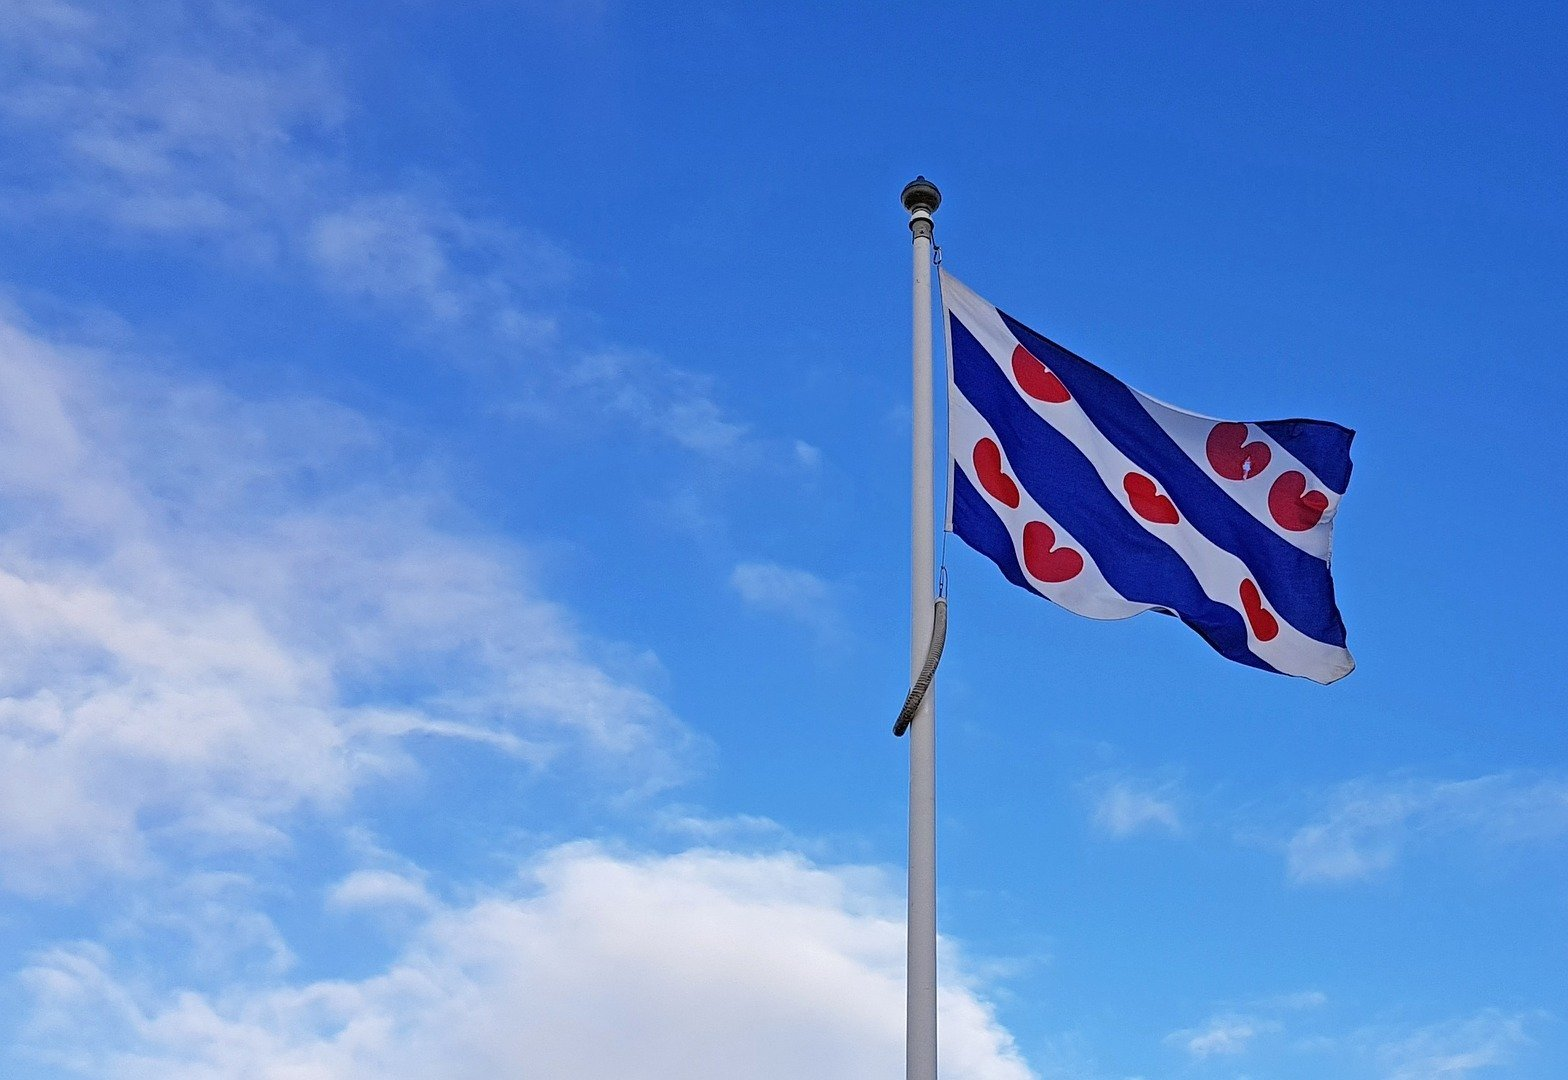 Friese vlag wapperend